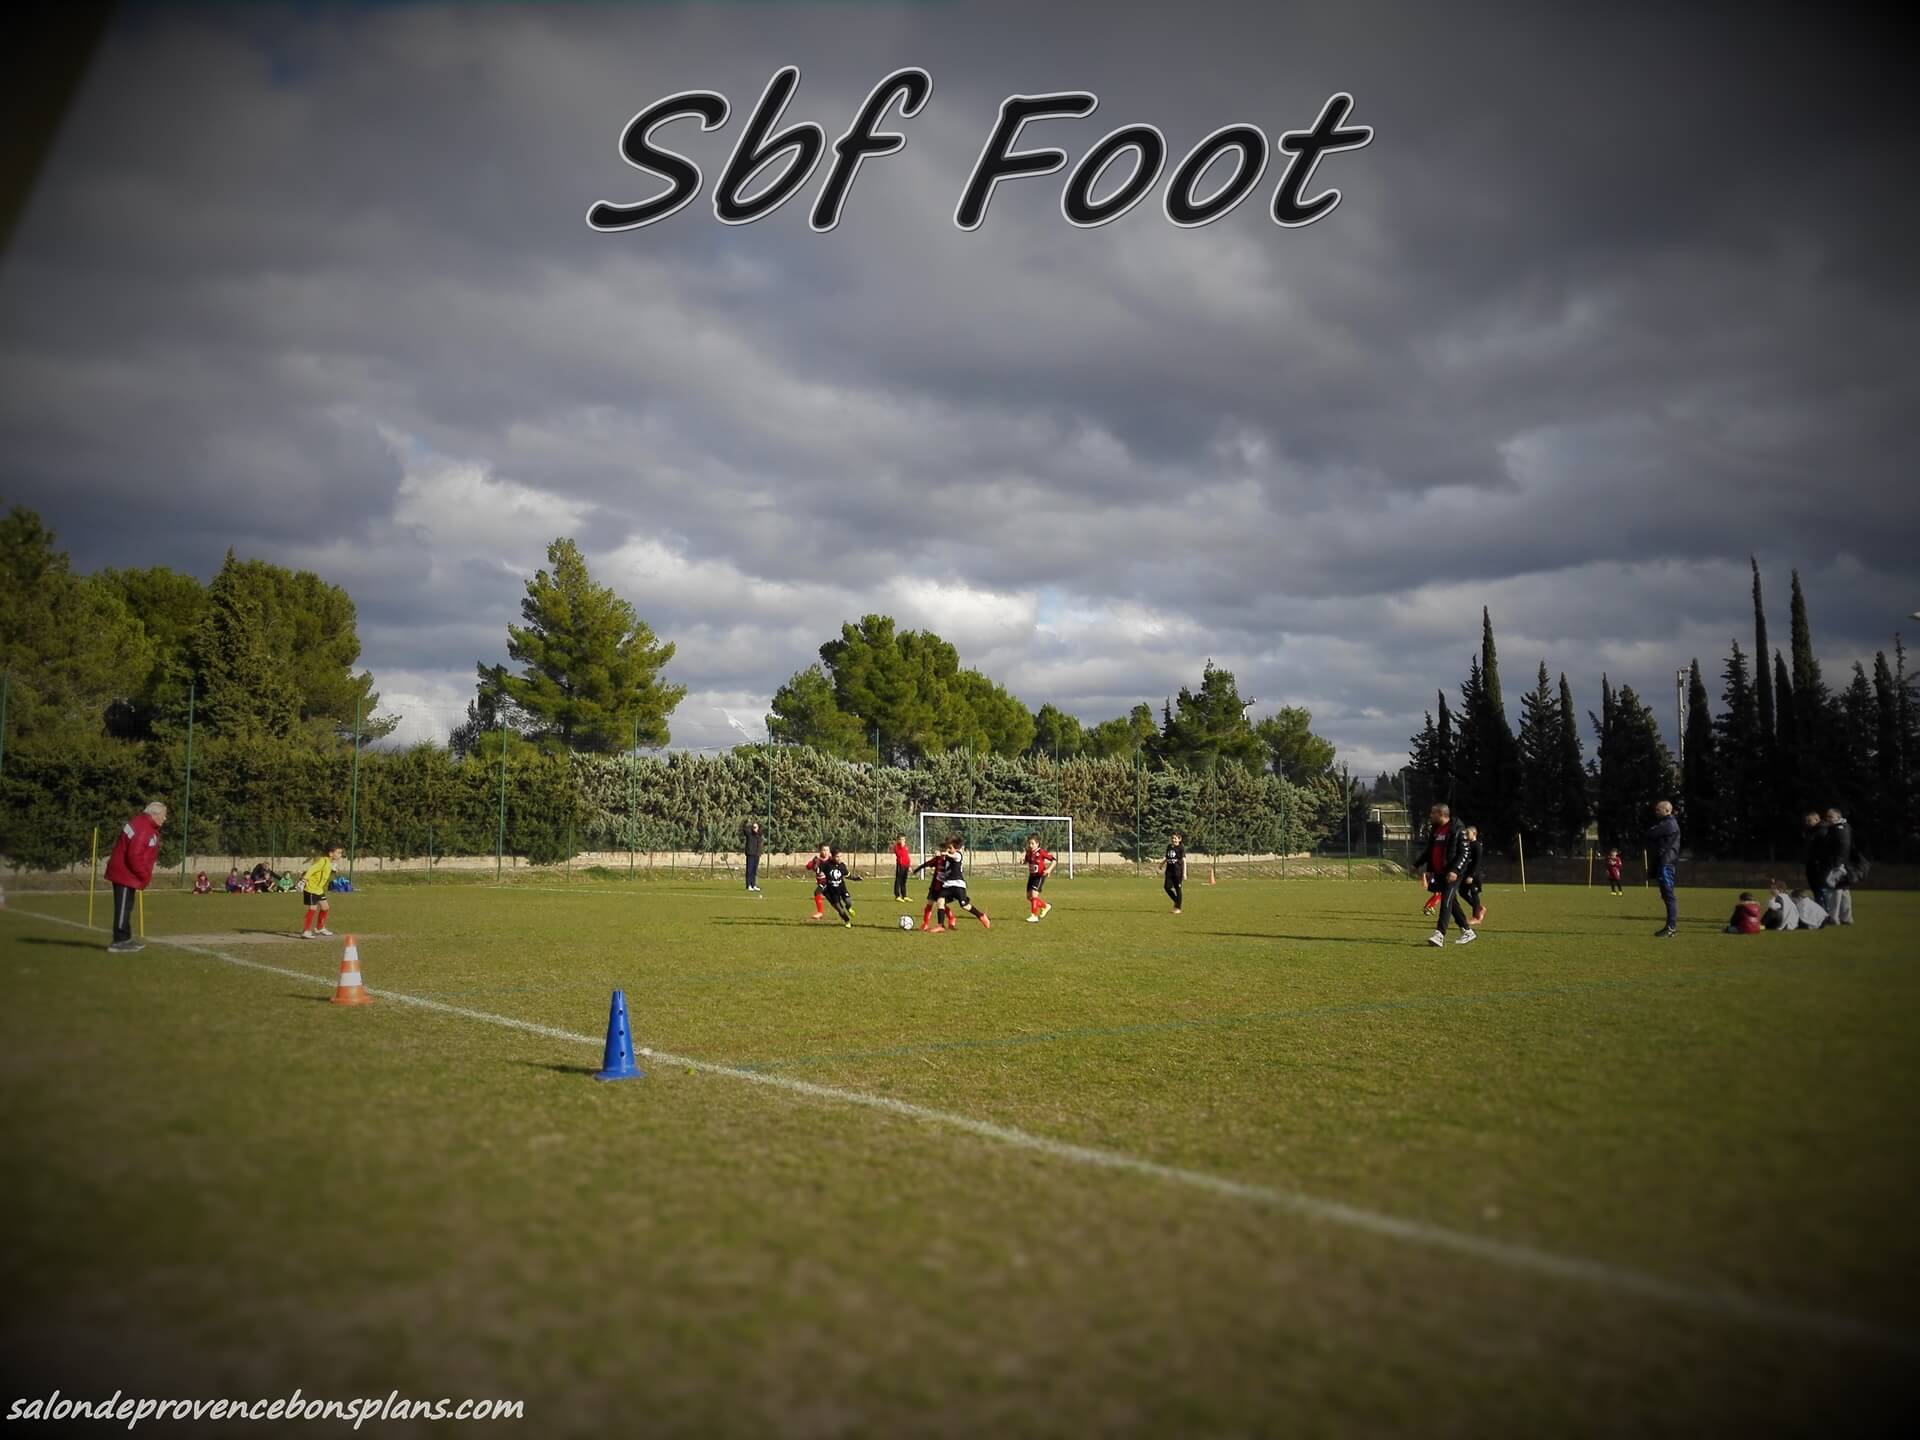 Sbf foot copie